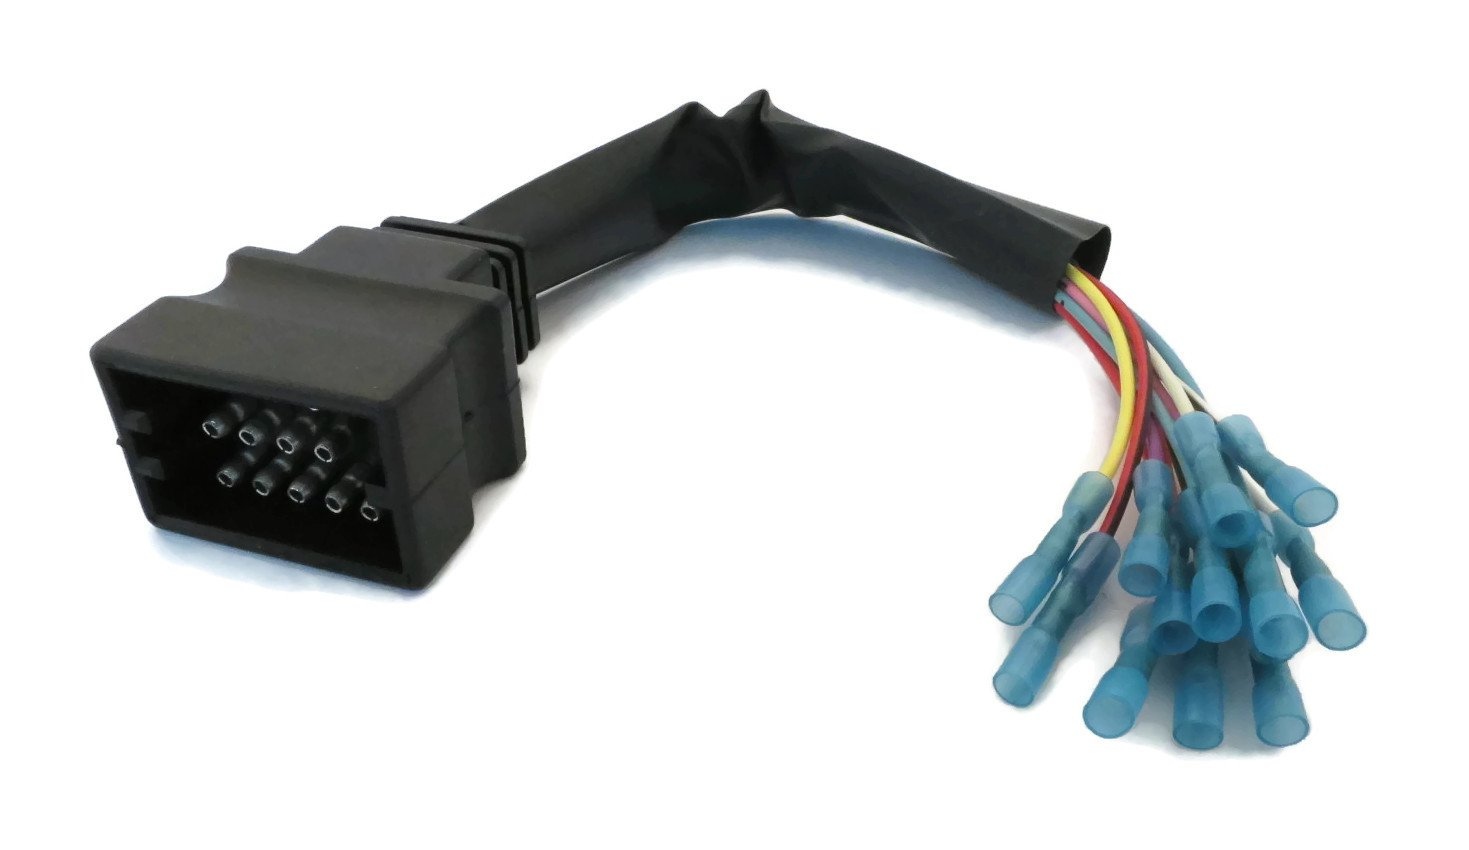 61IwZON%2BxQL._SL1469_ amazon com snow plow wiring harness repair kit msc04753 msc04754 boss rt3 truck side wiring harness at creativeand.co